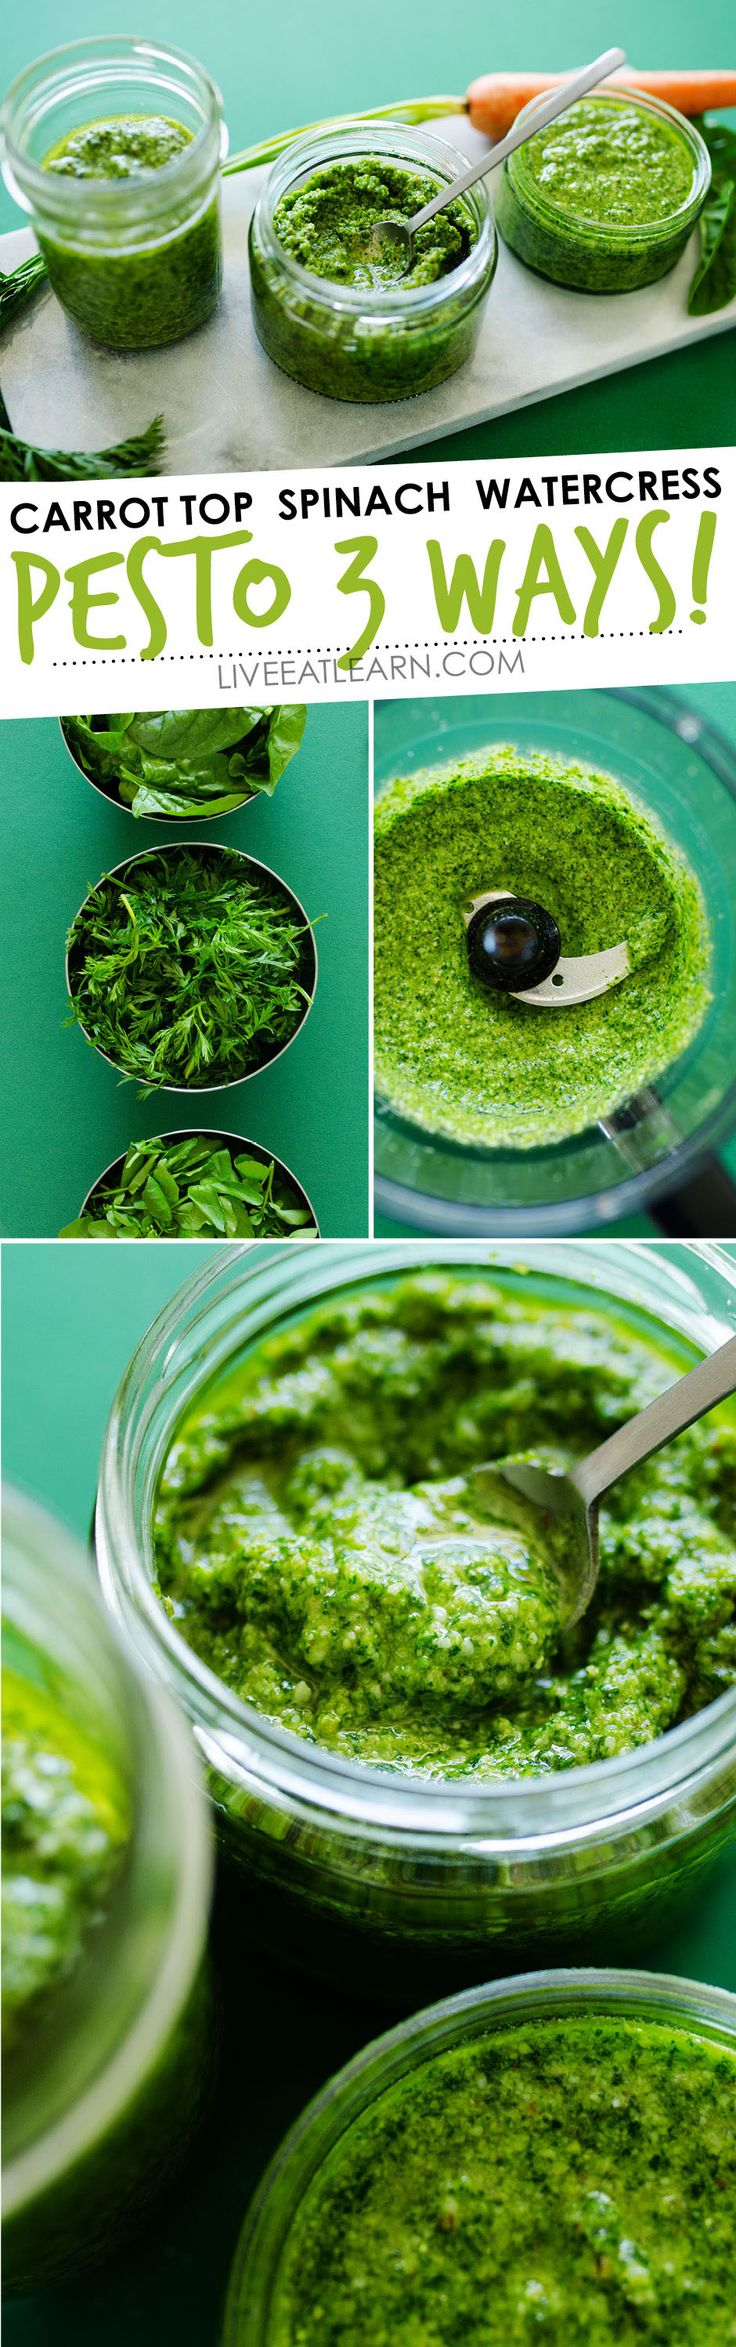 Got extra greens? Make some Leafy Greens Pesto with this easy pesto recipe! Here are 3 recipes for carrot top pesto, spinach pesto, and watercress pesto (all in under 5 minutes!) This is a flavor-packed sauce that is perfect for pesto pasta, pesto sandwiches, or even as a dip. // Live Eat Learn